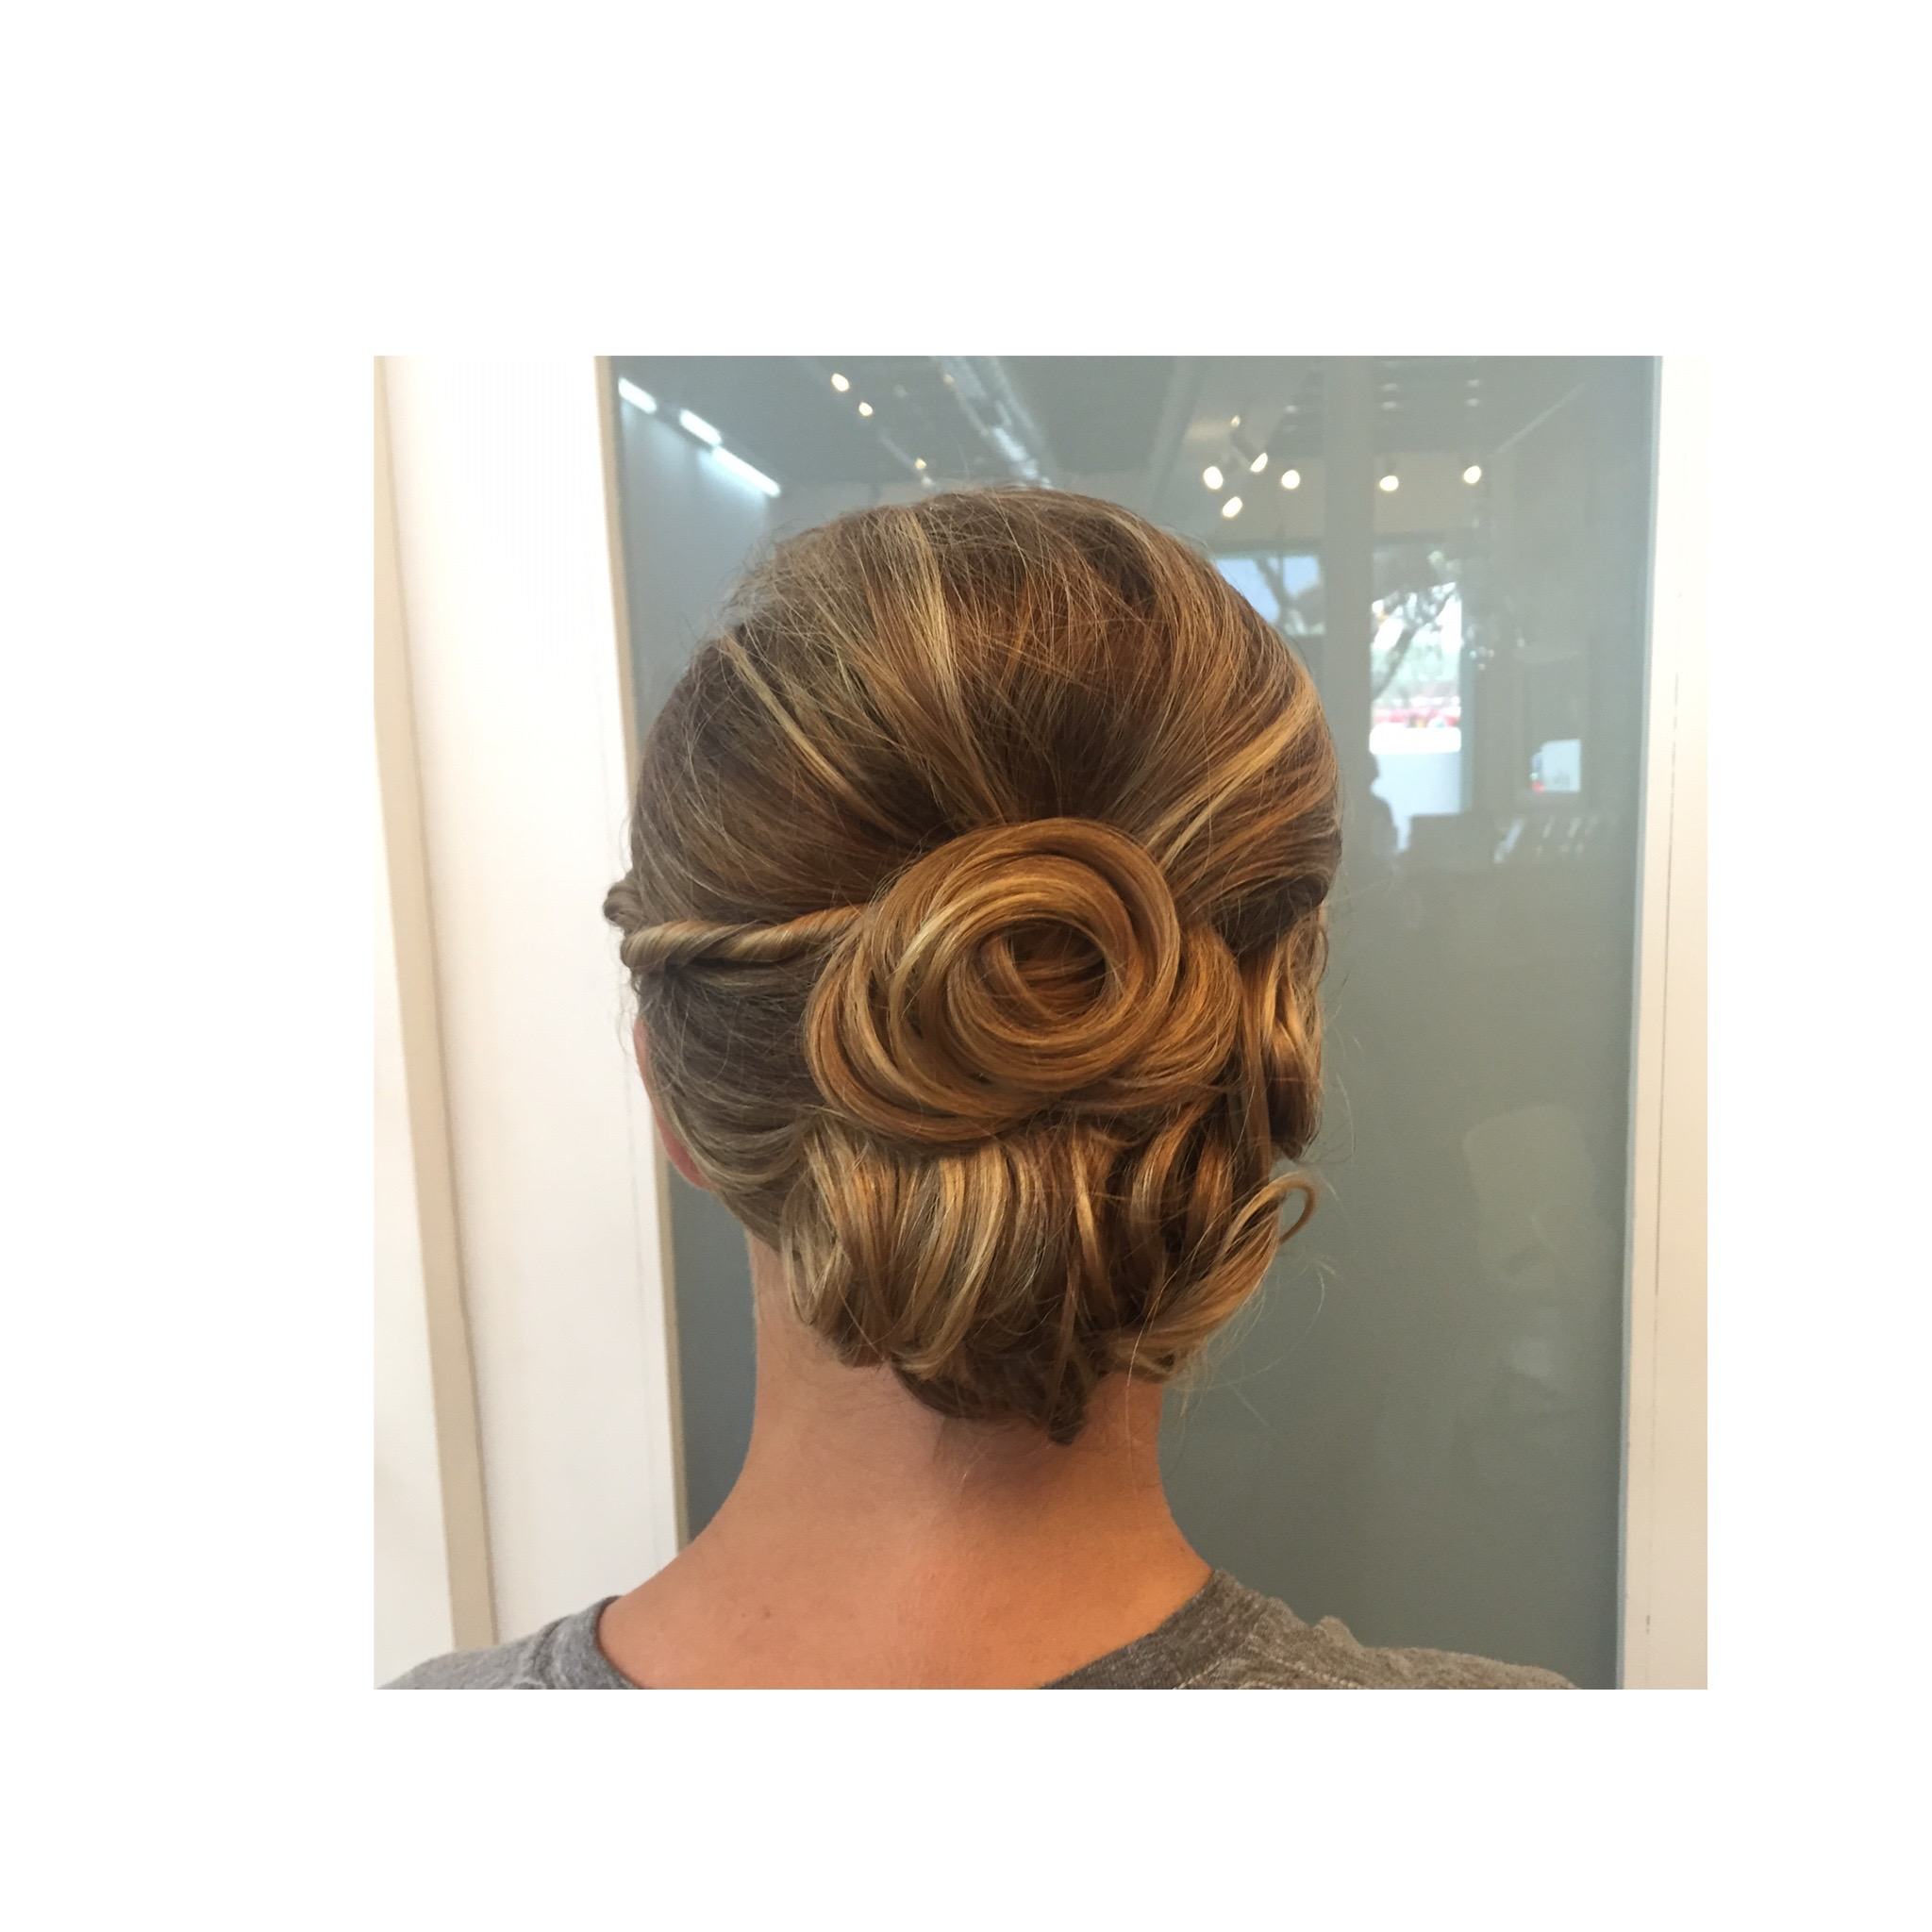 Wedding hair @kmiasalon